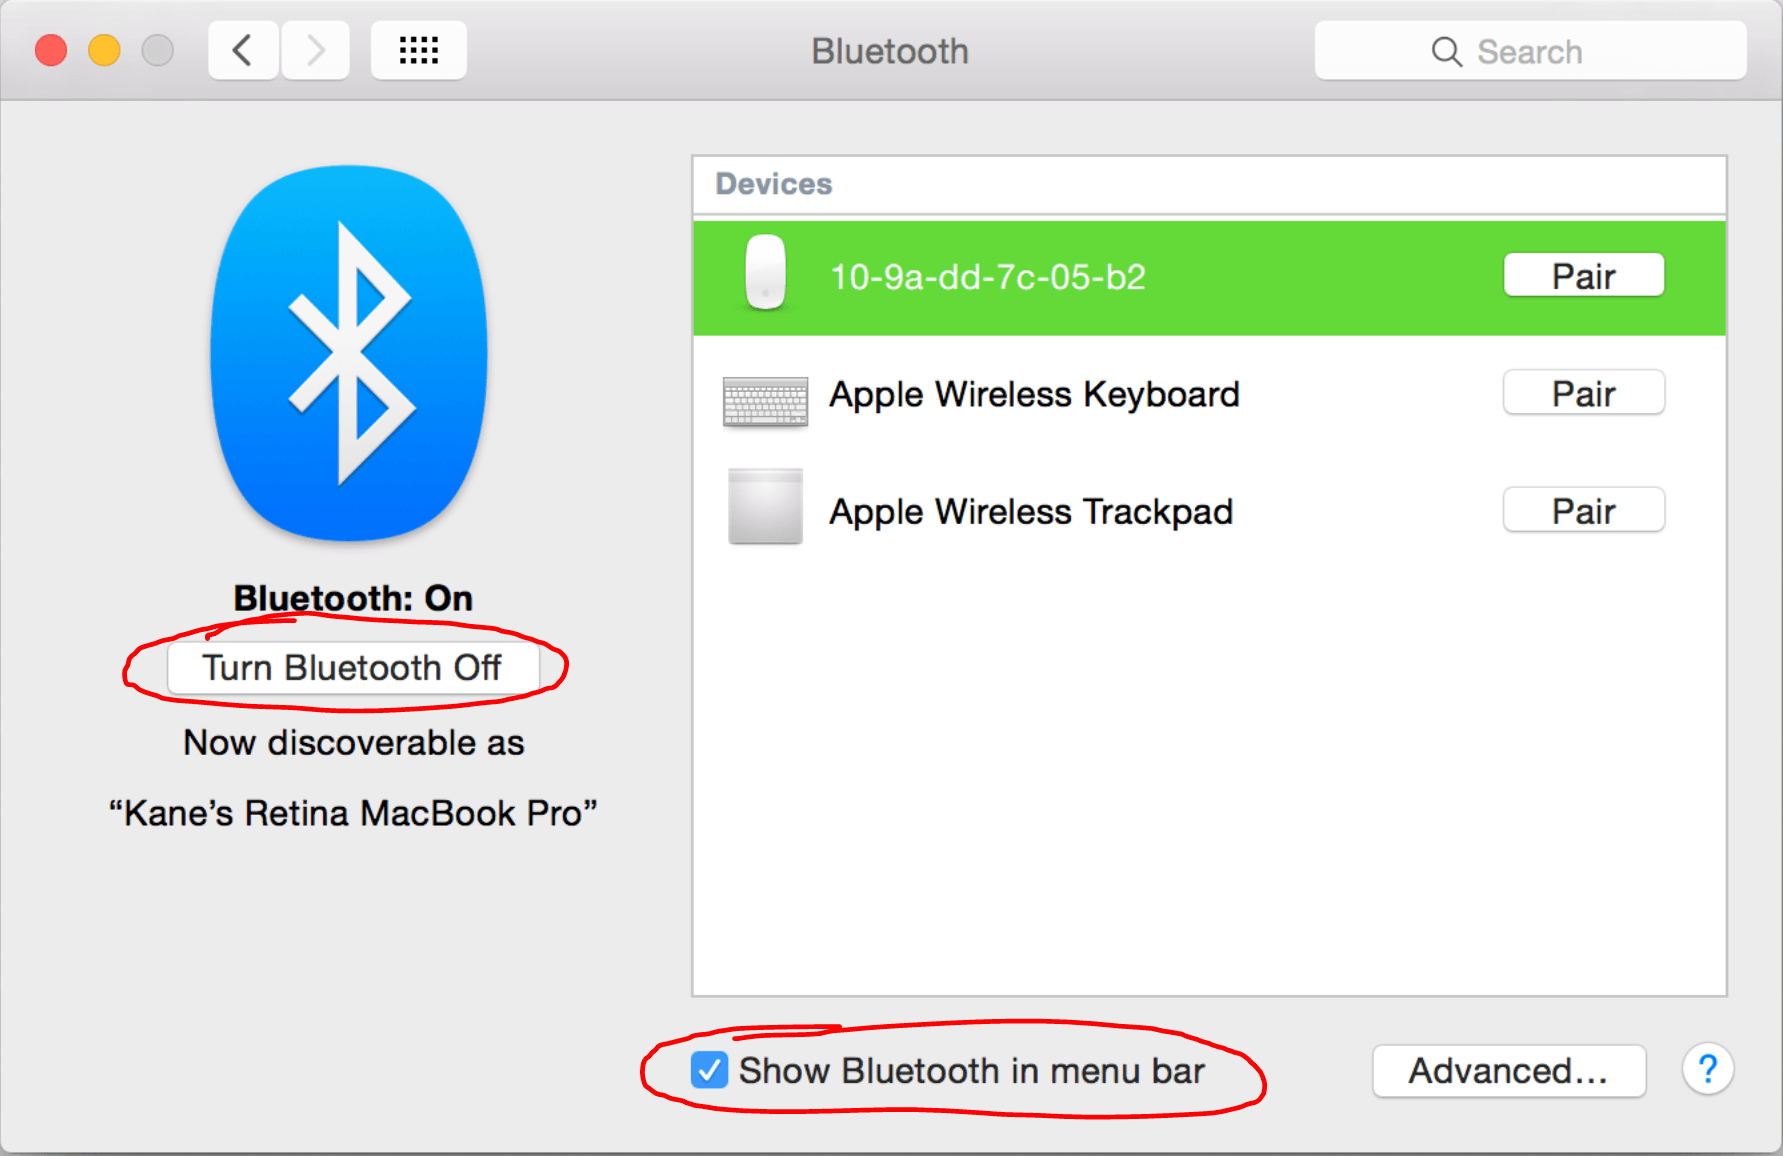 A picture showing the Bluetooth Options on macOS.